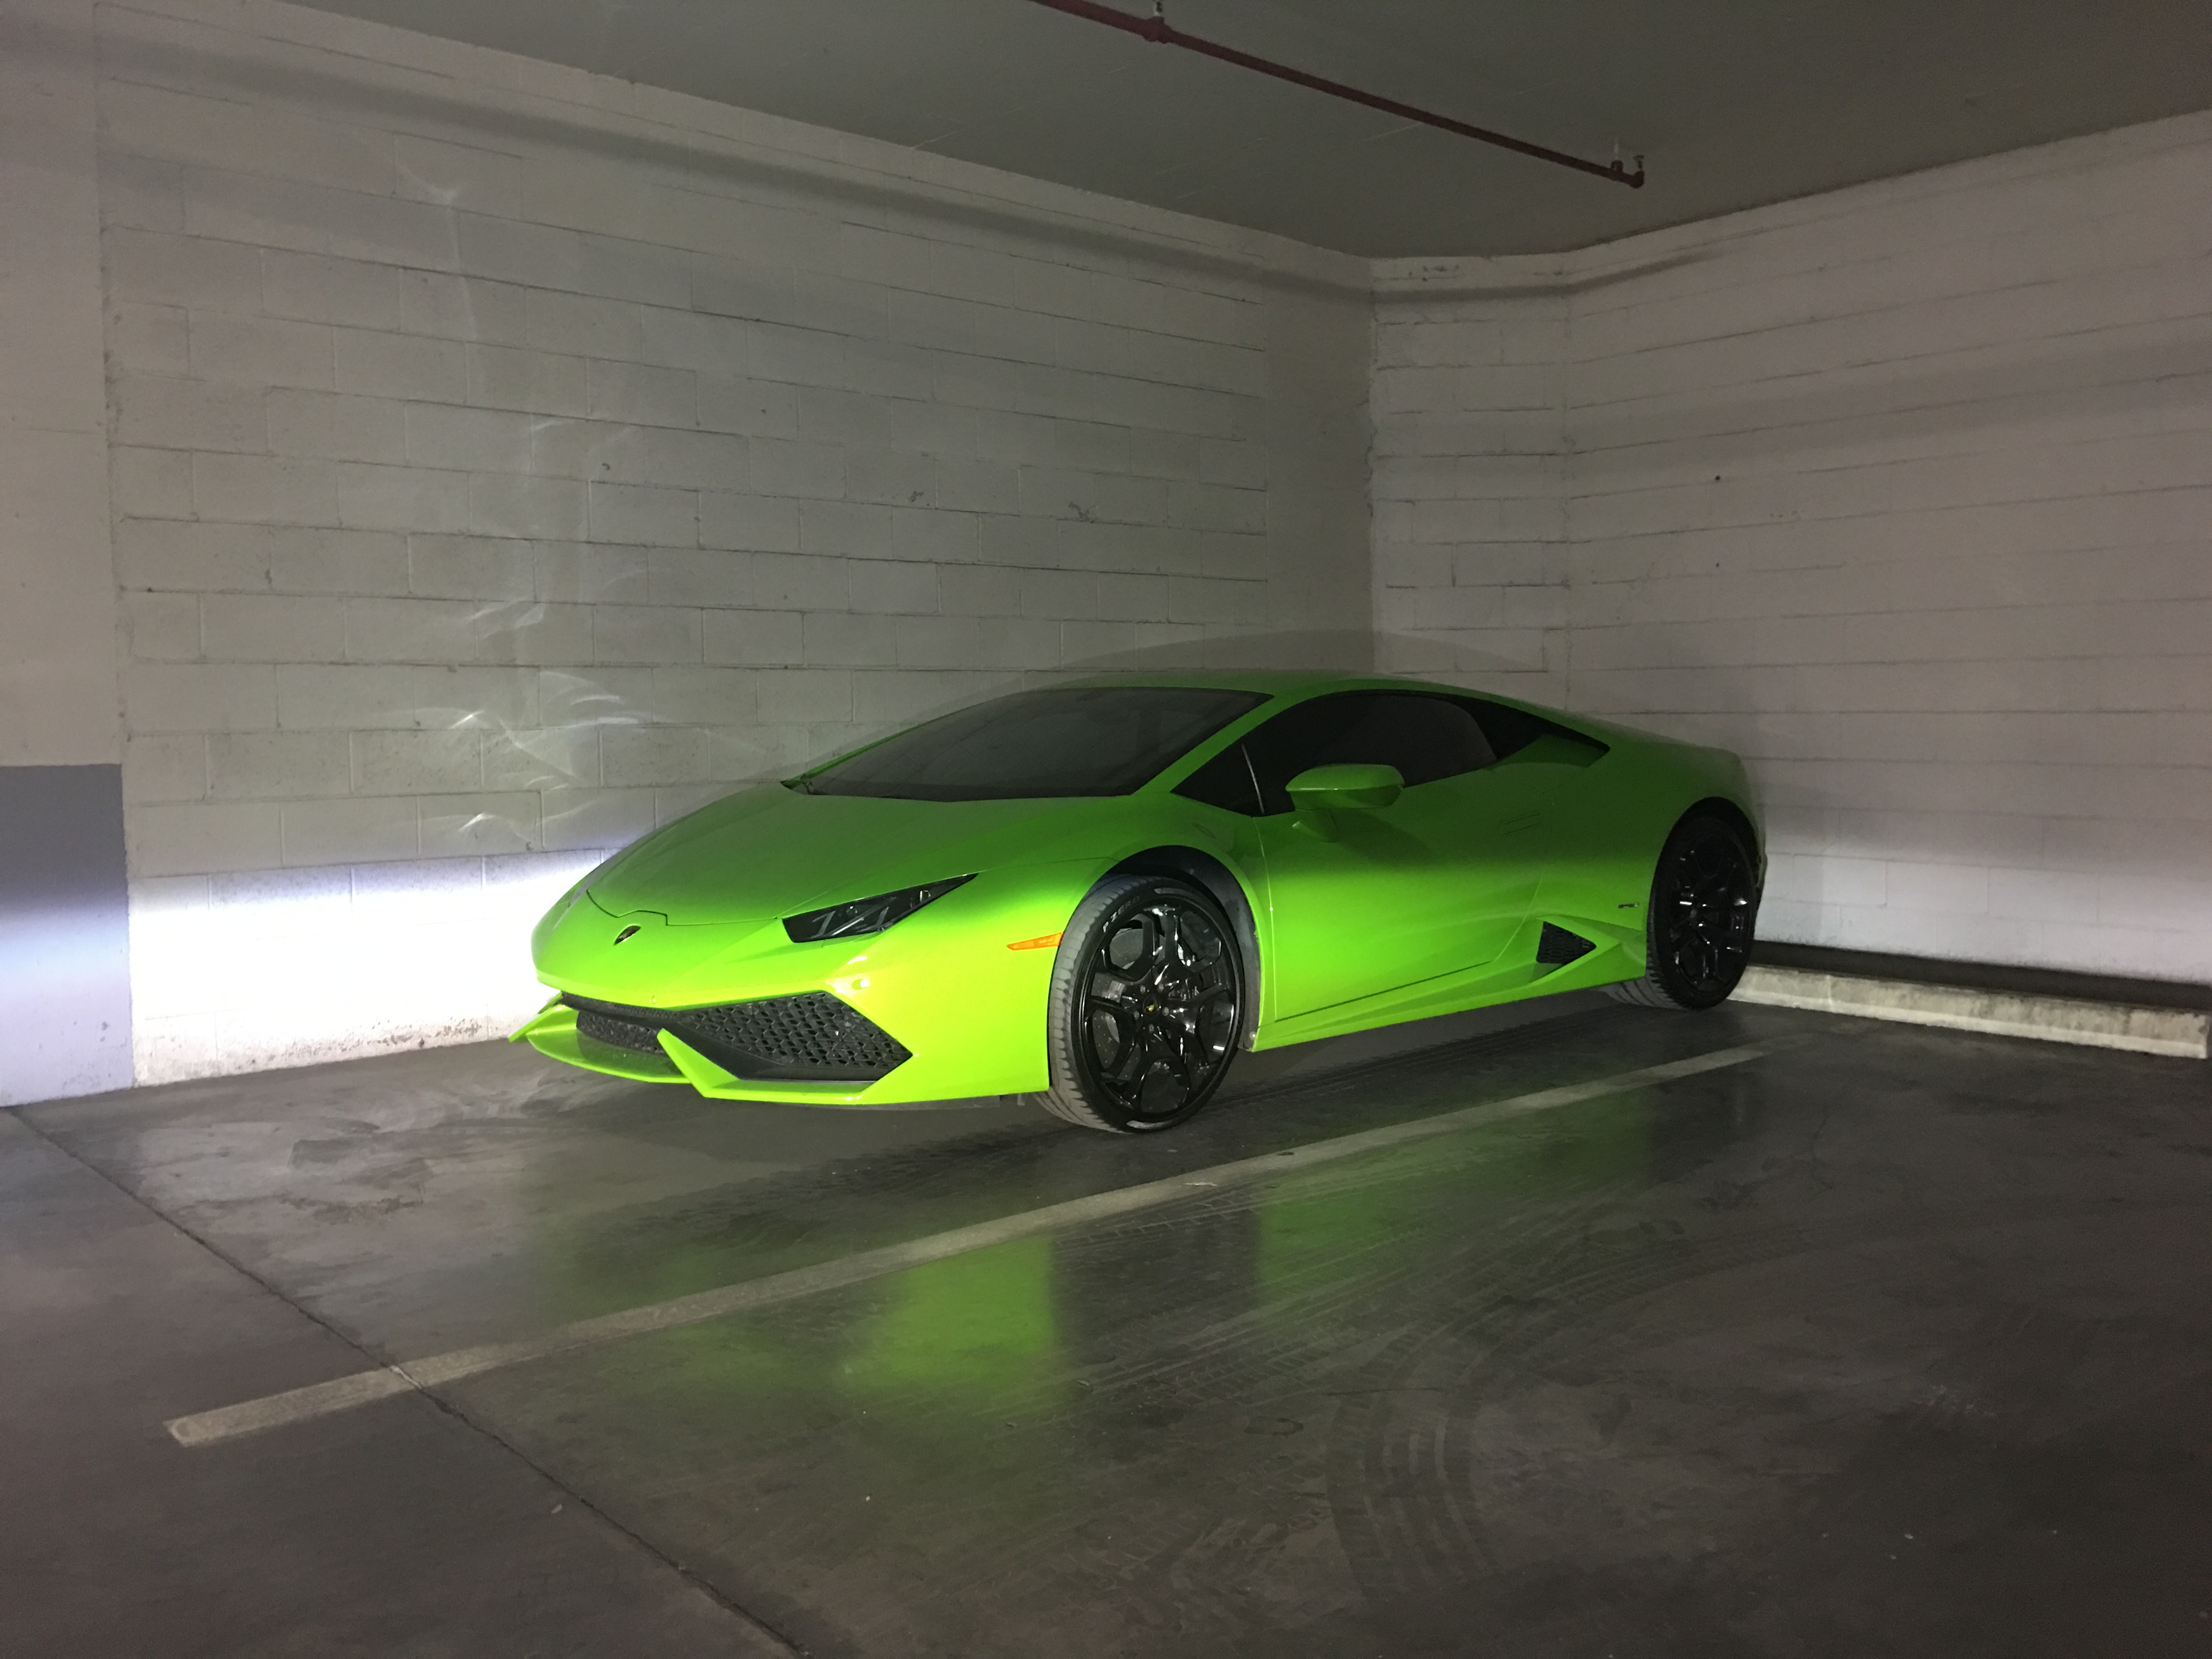 Lv Cars Exotic Luxury Car Rentals Coupons Near Me In Las